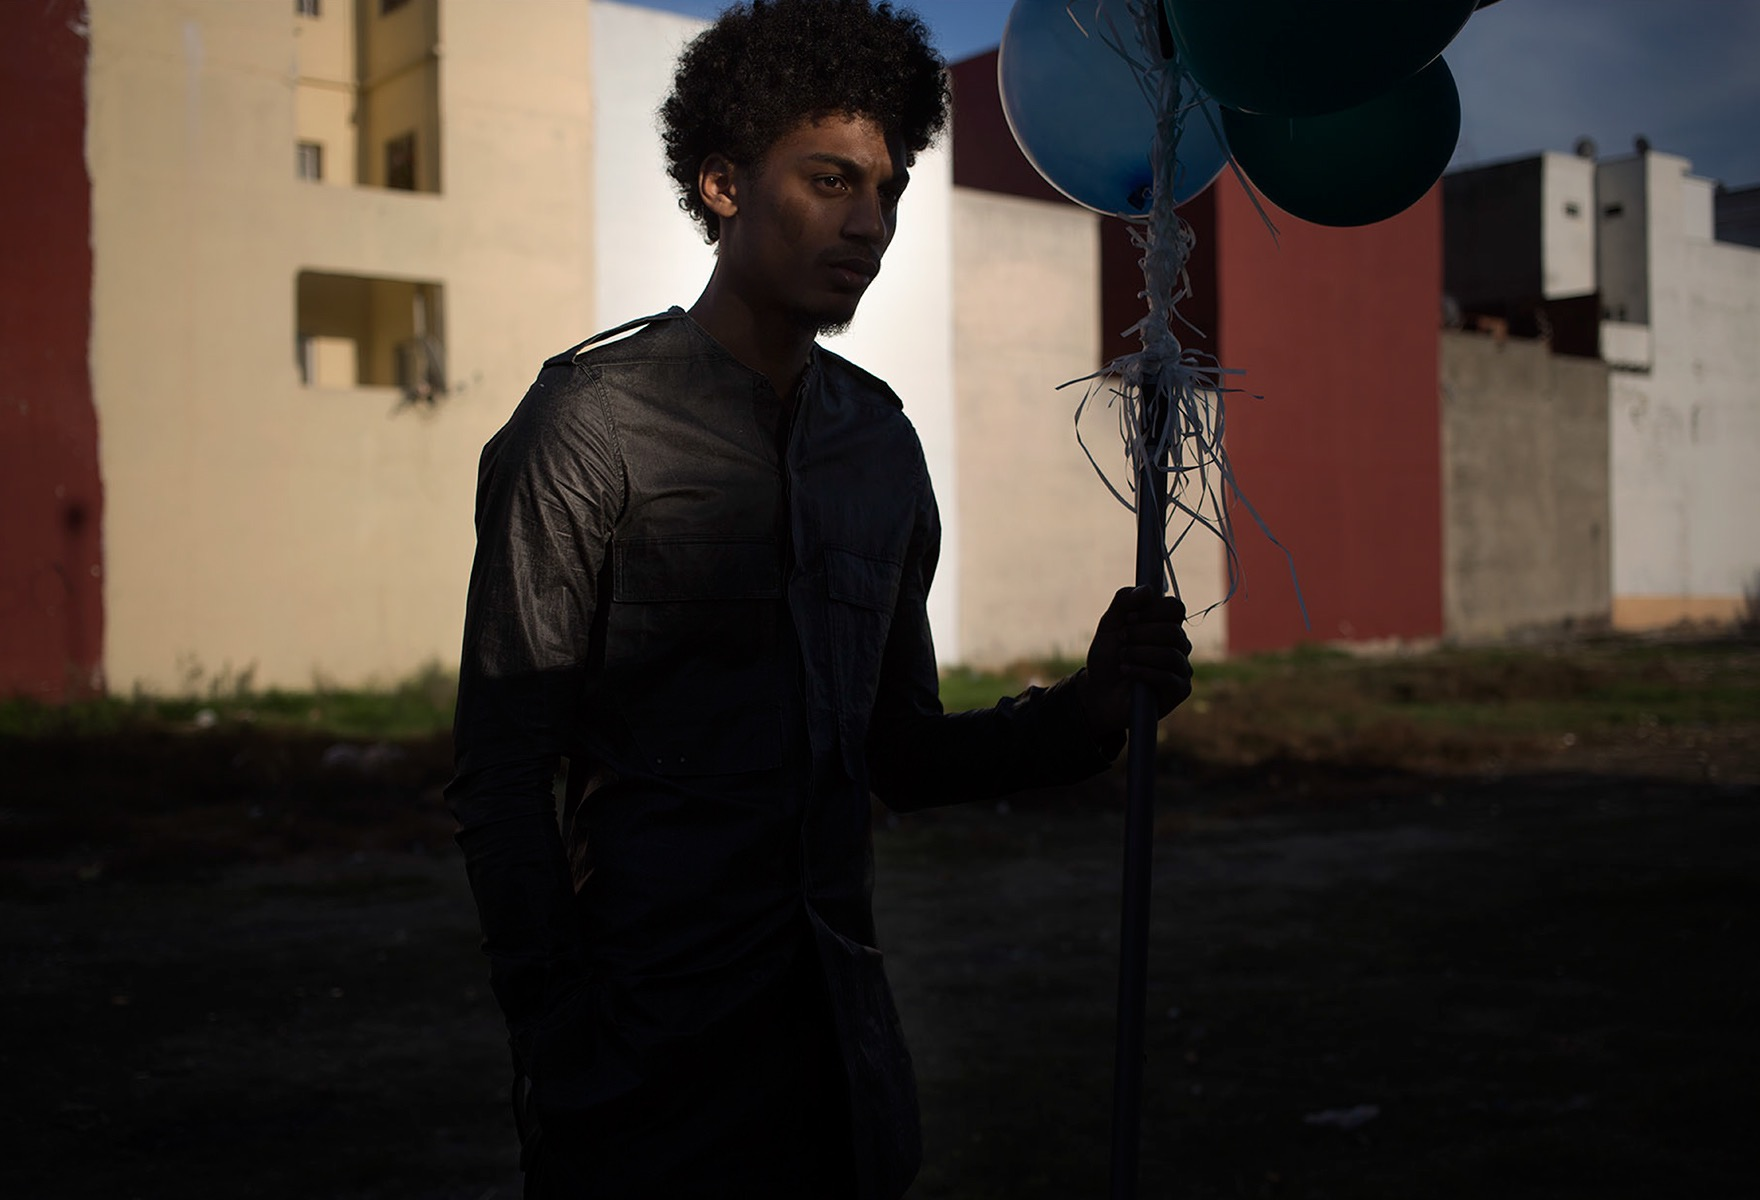 photo, photos, photography, photographer, photographers, balloon, balloons, building, shadow, dark, man, men, afro